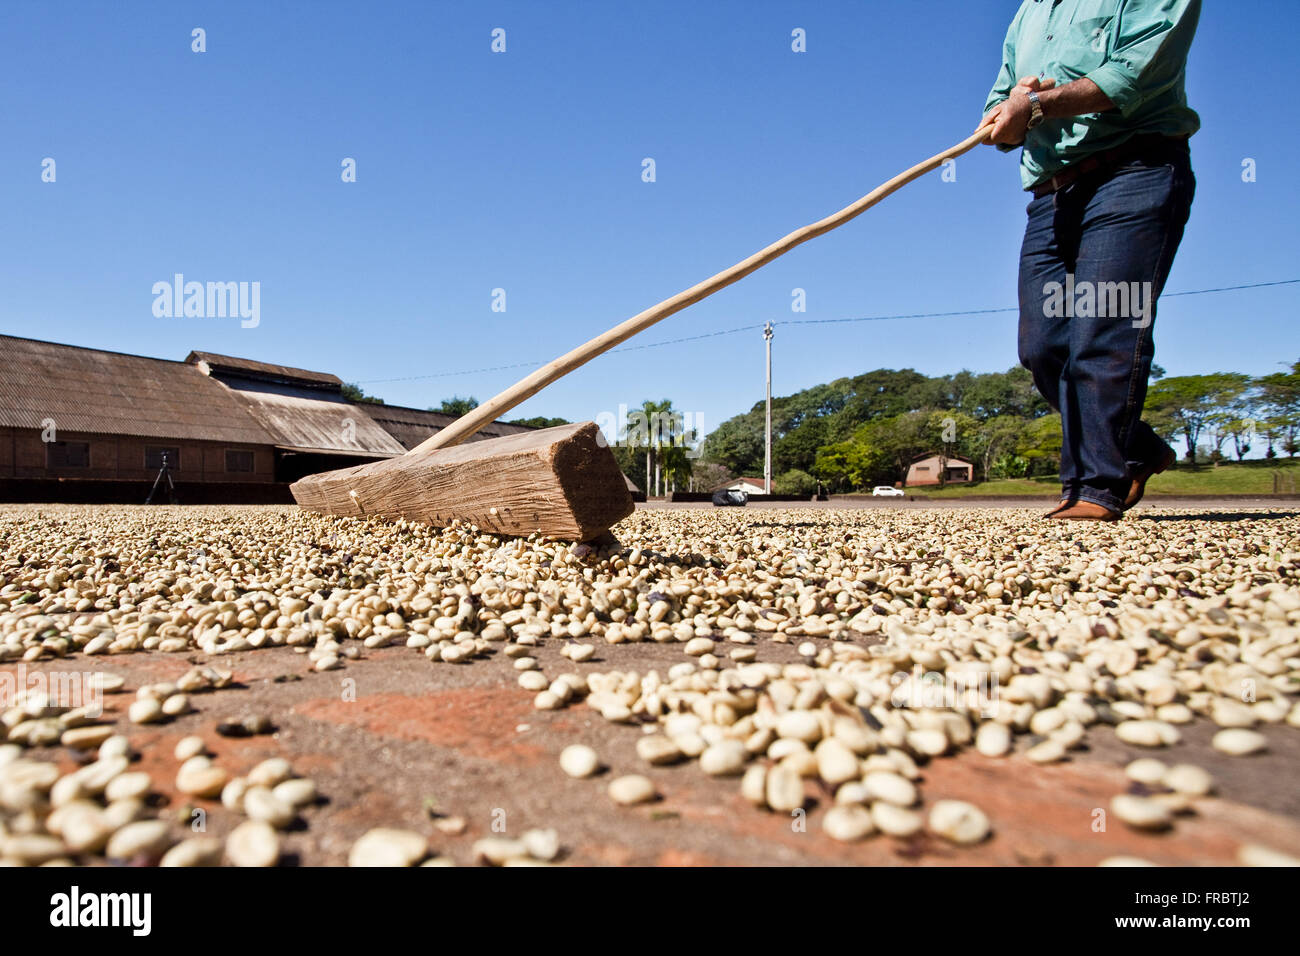 Farm laborer on yard for drying cafe - Stock Image